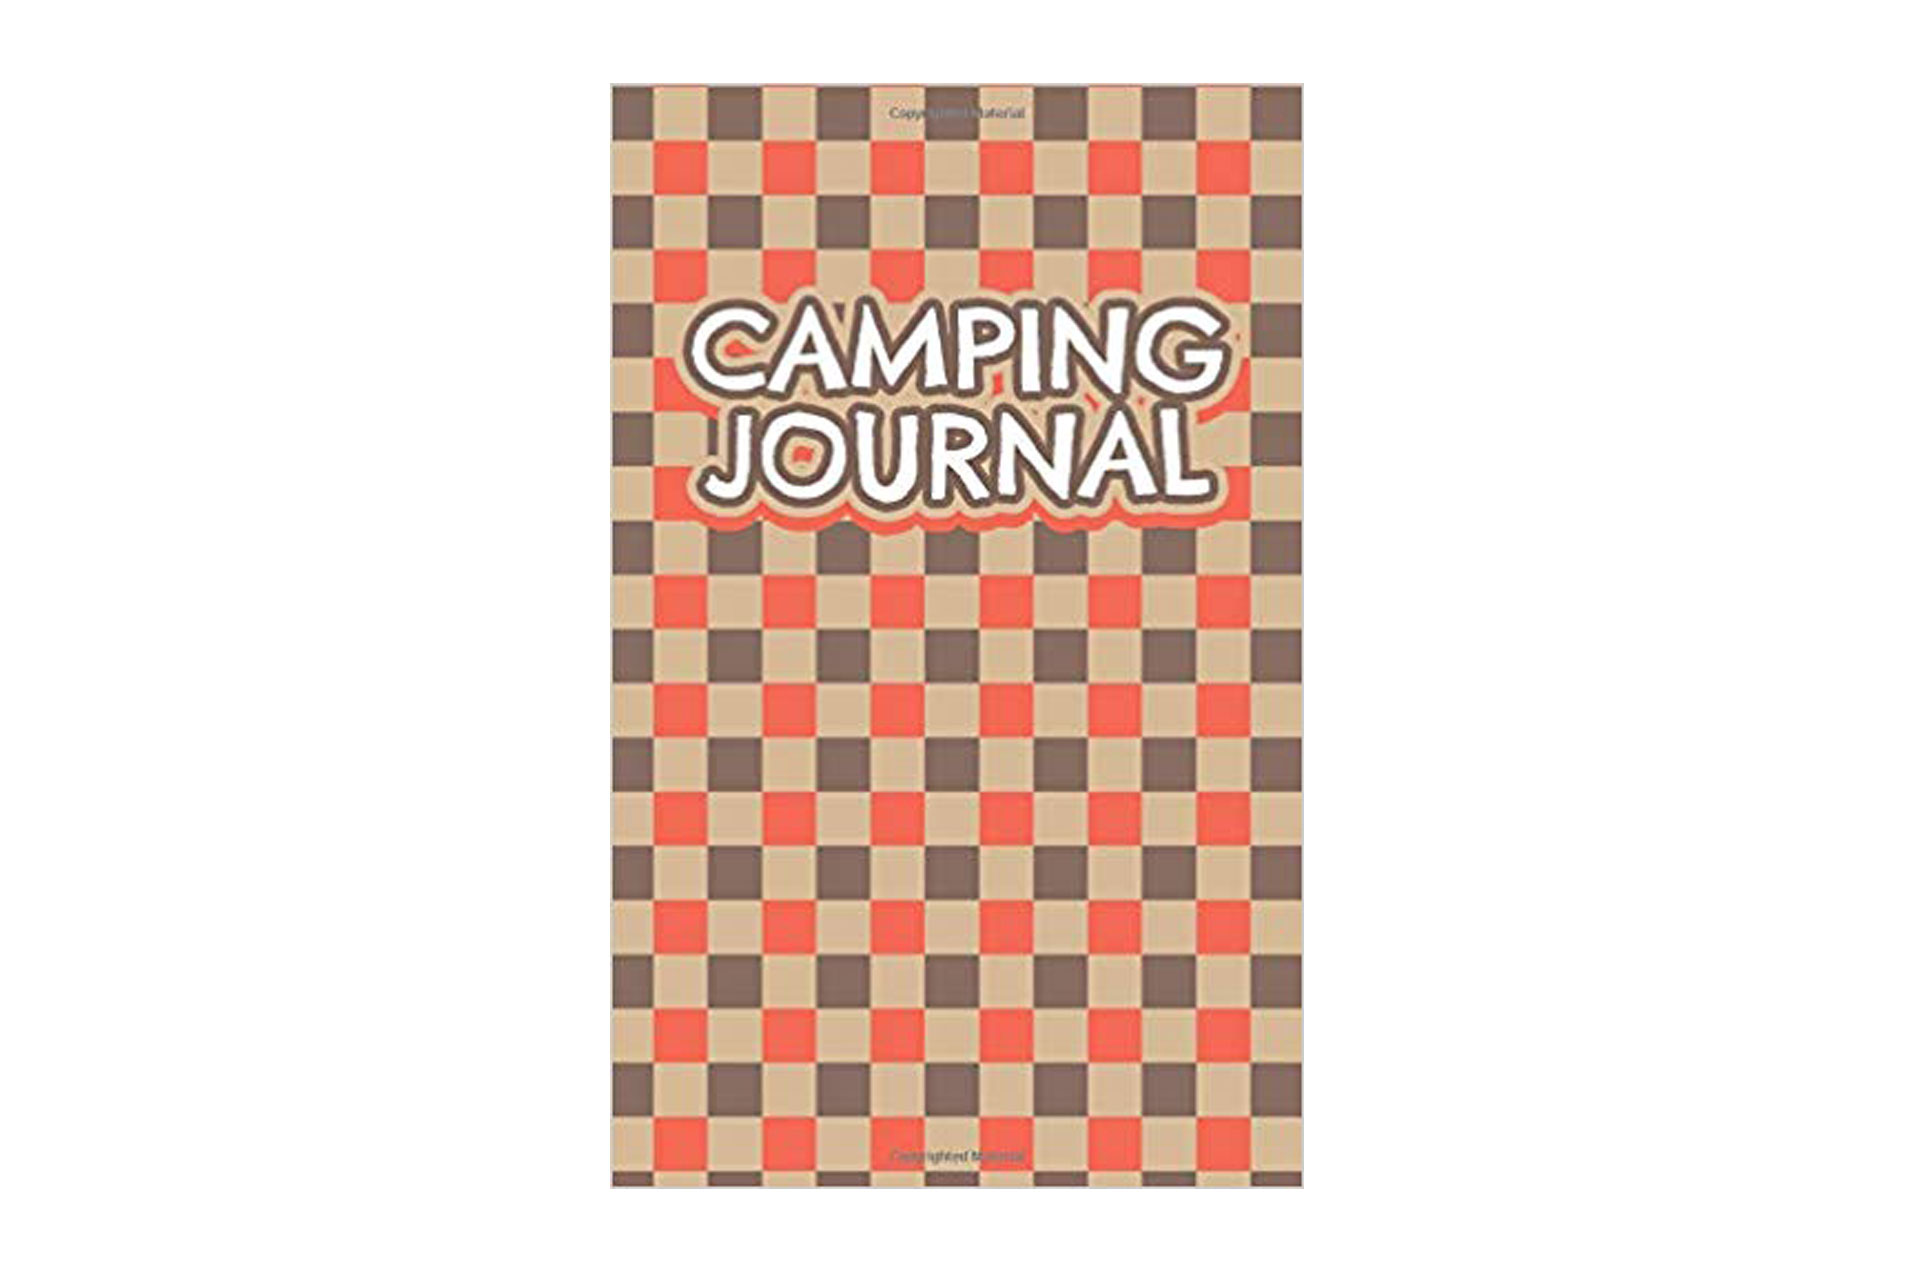 Camping Journal; Courtesy of Amazon